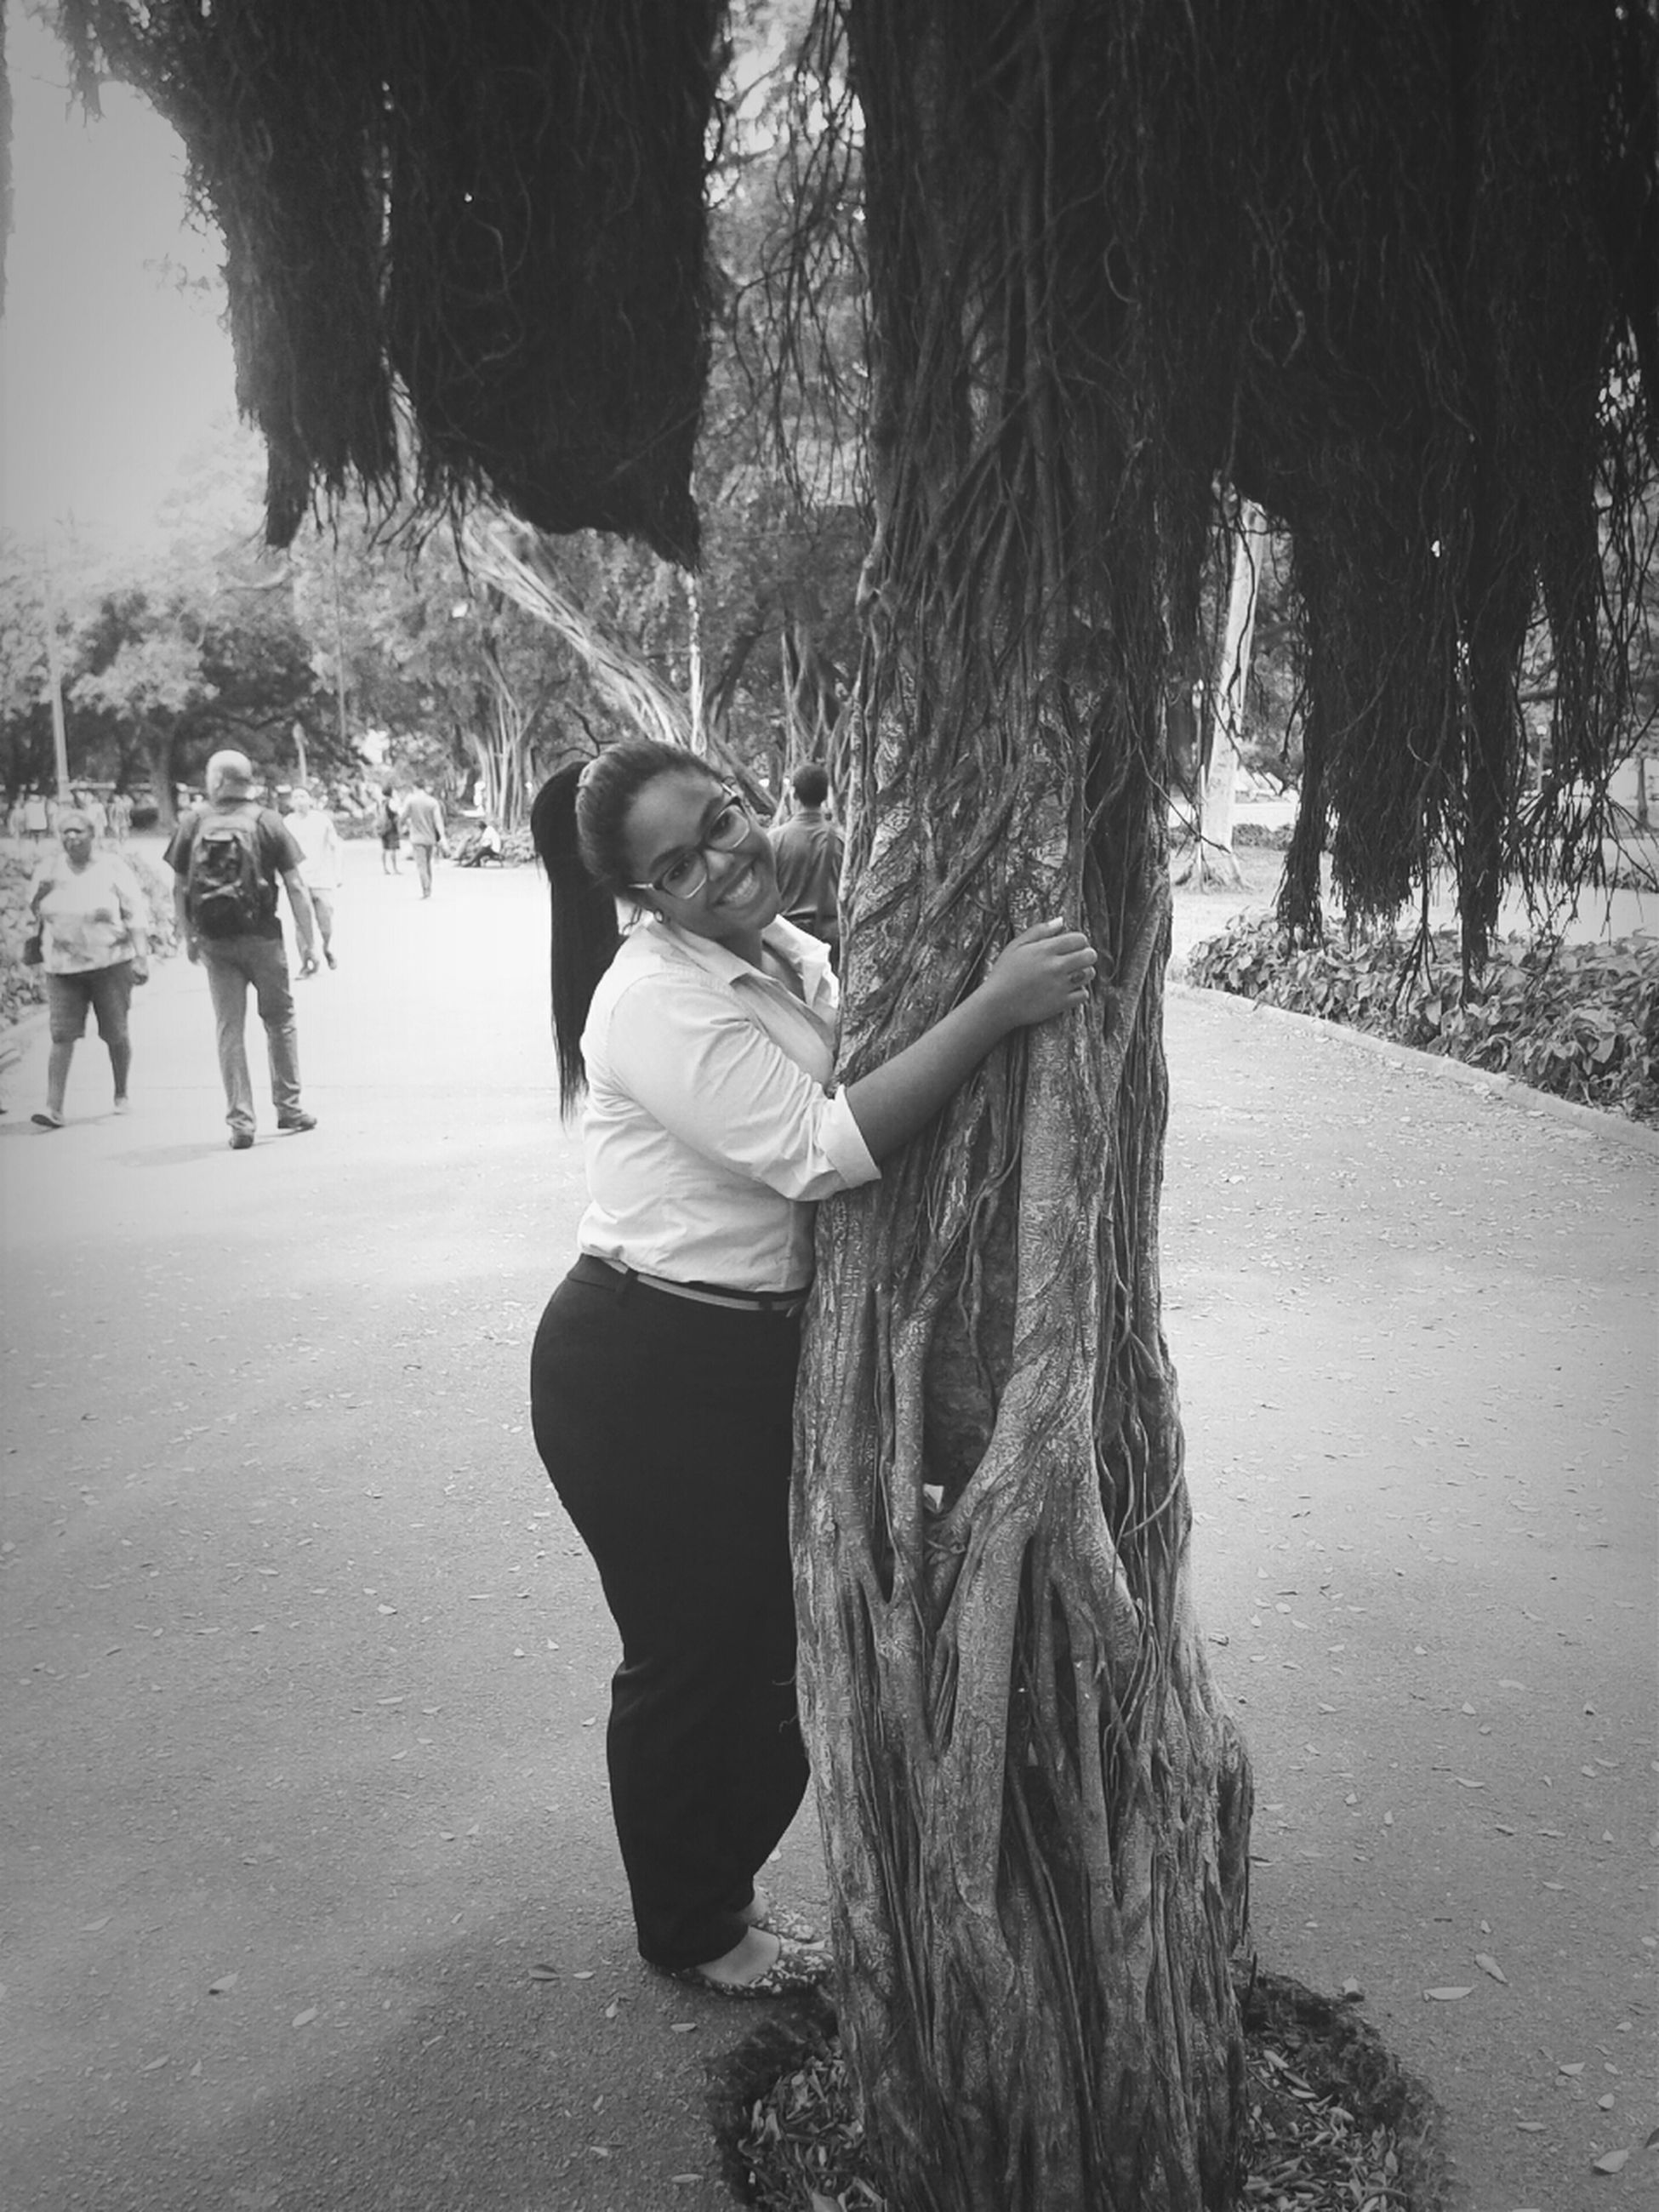 tree, lifestyles, casual clothing, rear view, leisure activity, full length, childhood, walking, tree trunk, standing, day, park - man made space, boys, outdoors, person, girls, footpath